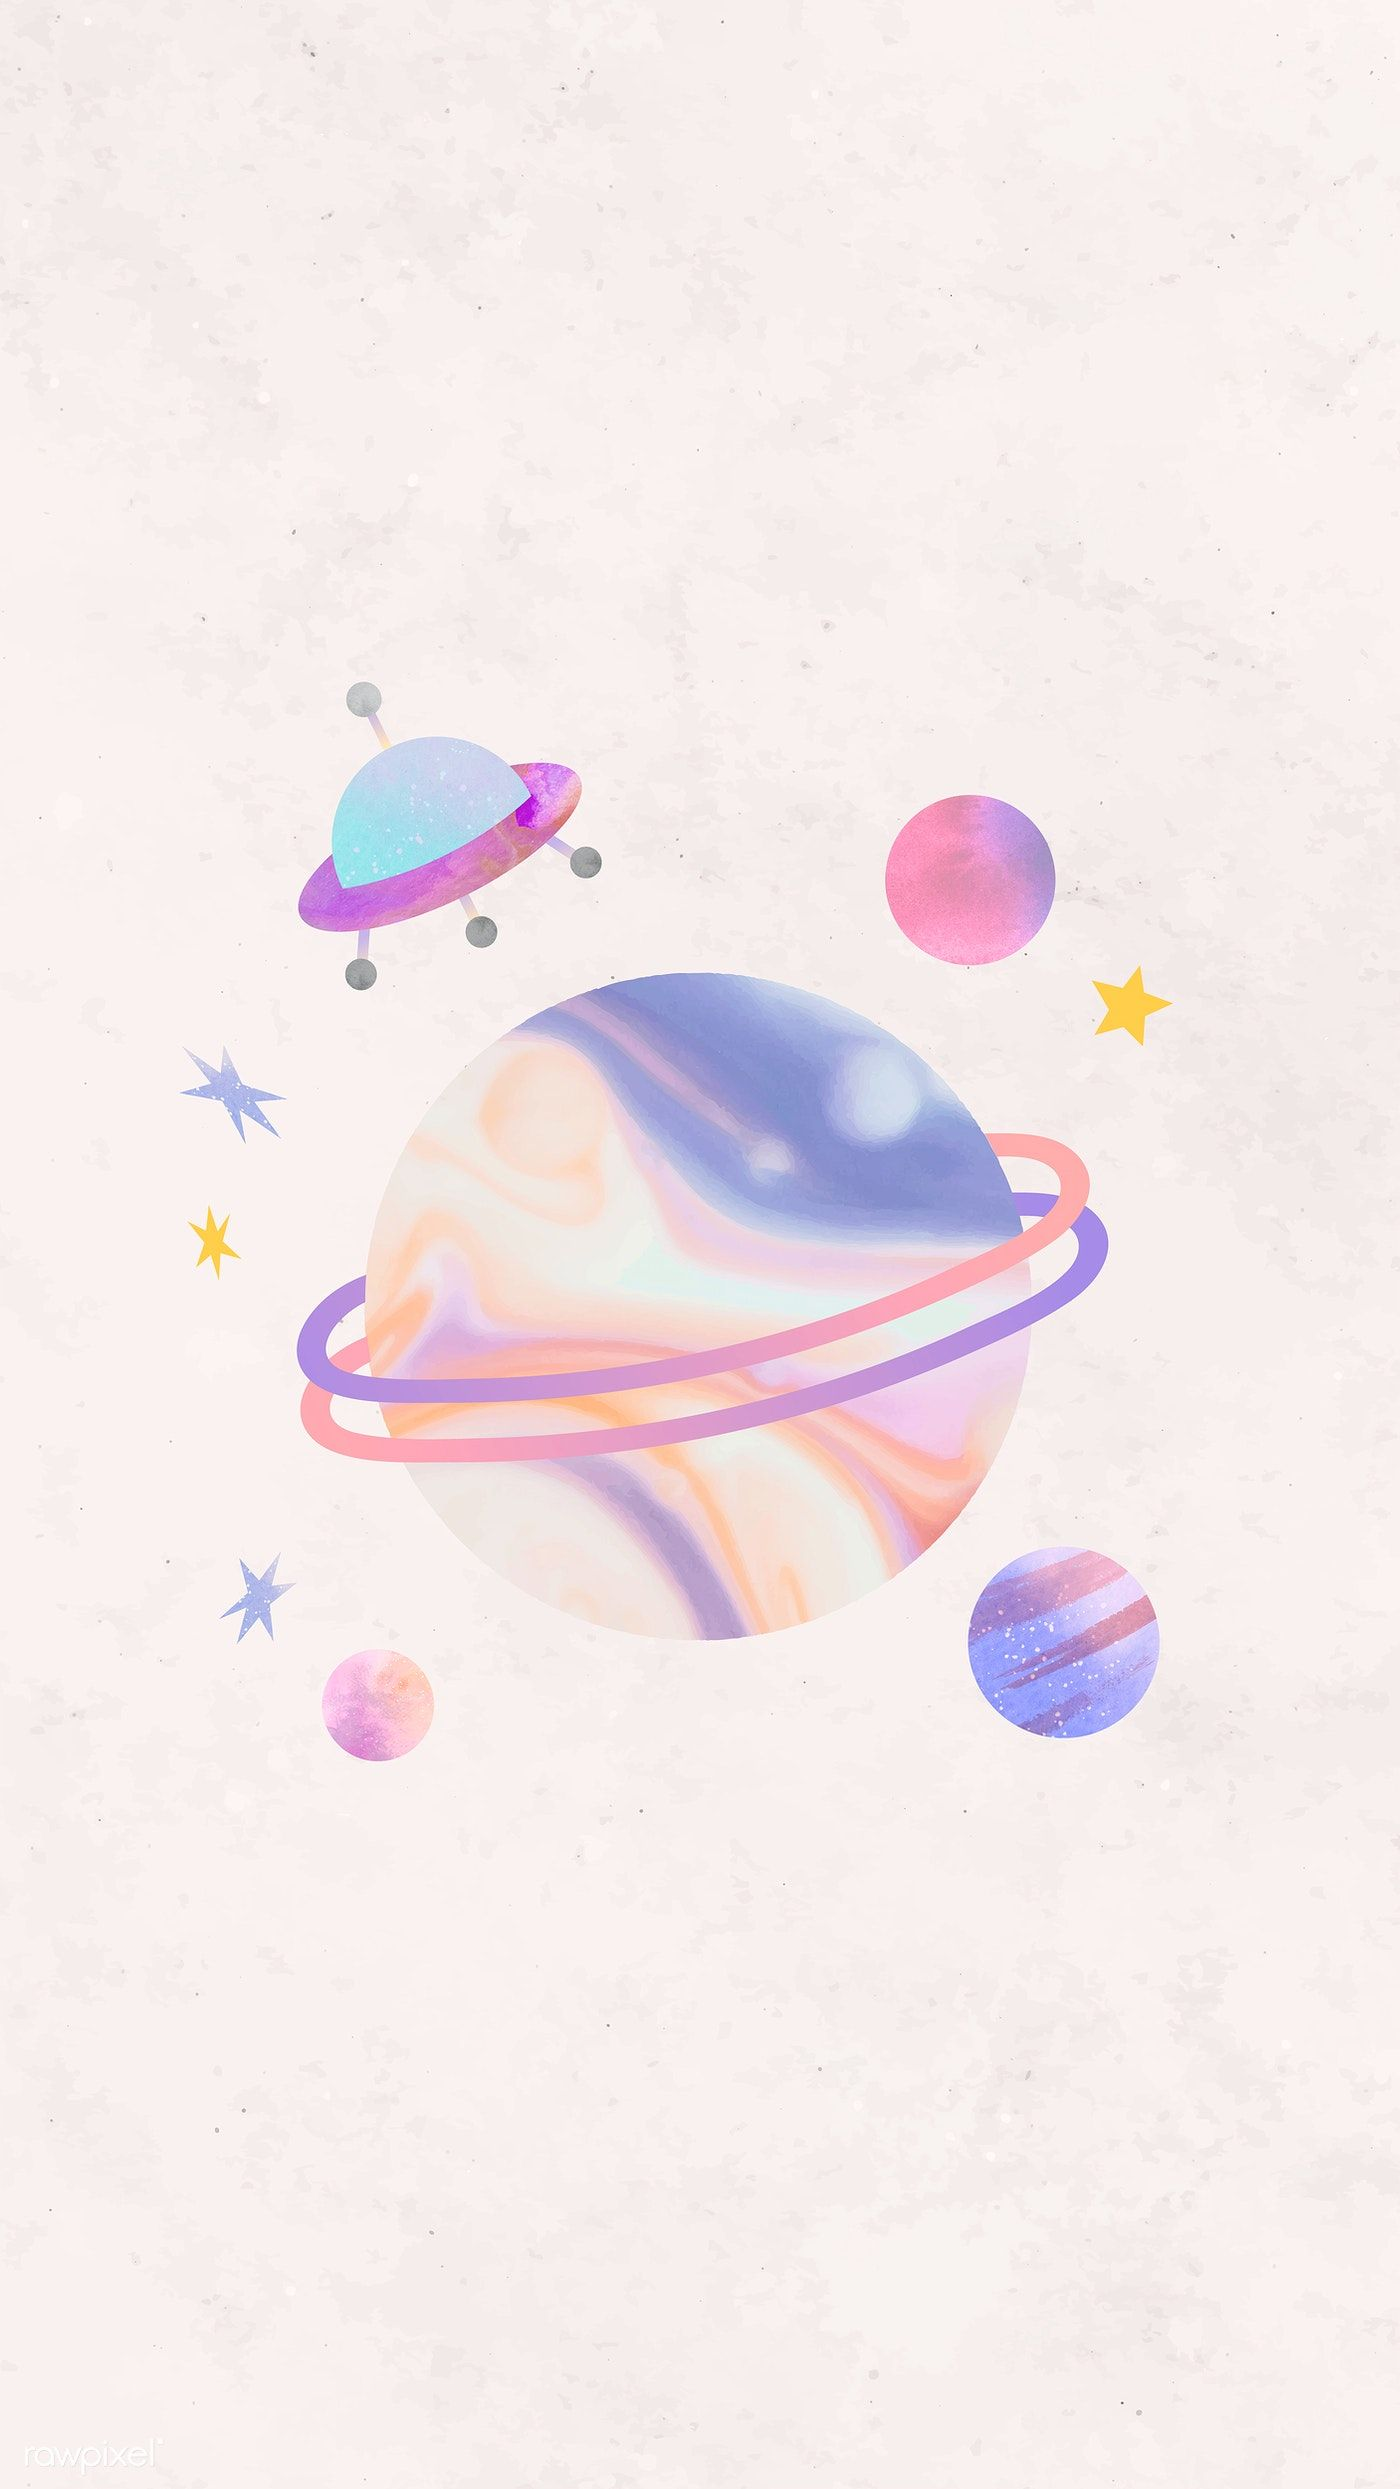 Download premium vector of Colorful galaxy watercolor doodle with an UFO